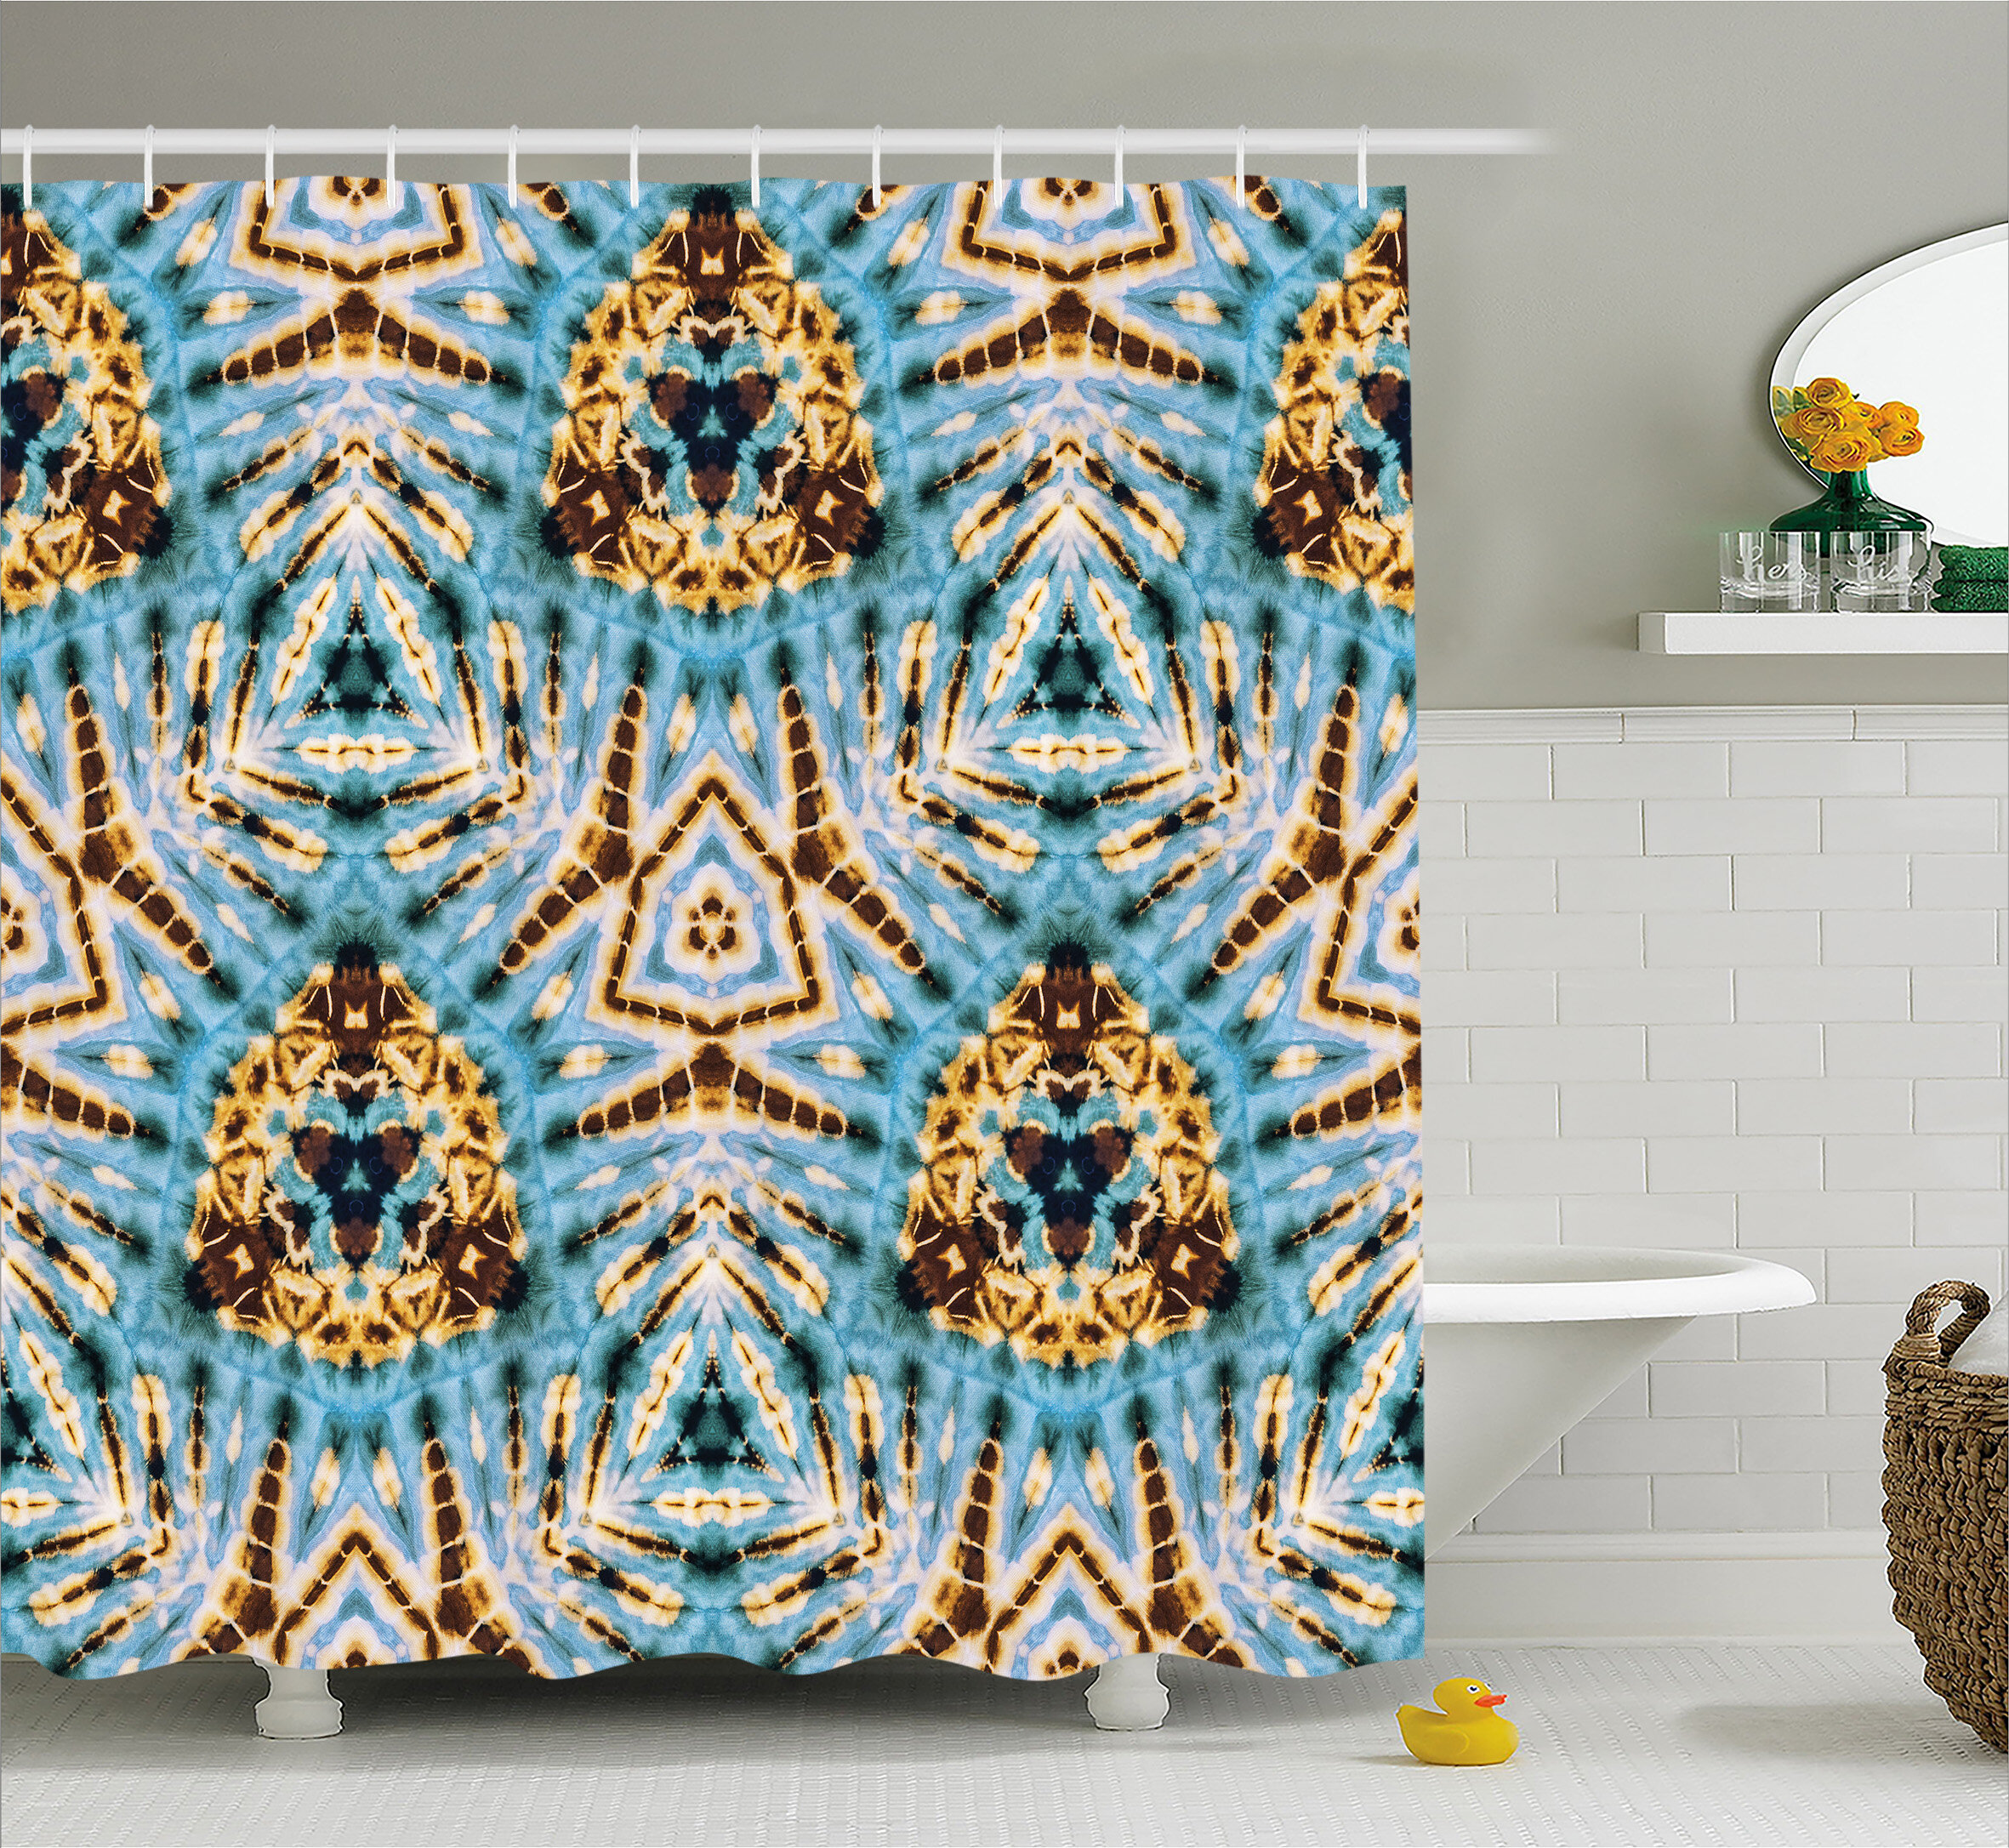 World Menagerie Auchincloss Tie Dye Tribal Stylized Trippy Shapes With Dirt  Grungy Paint Reflections Artisan Print Shower Curtain | Wayfair